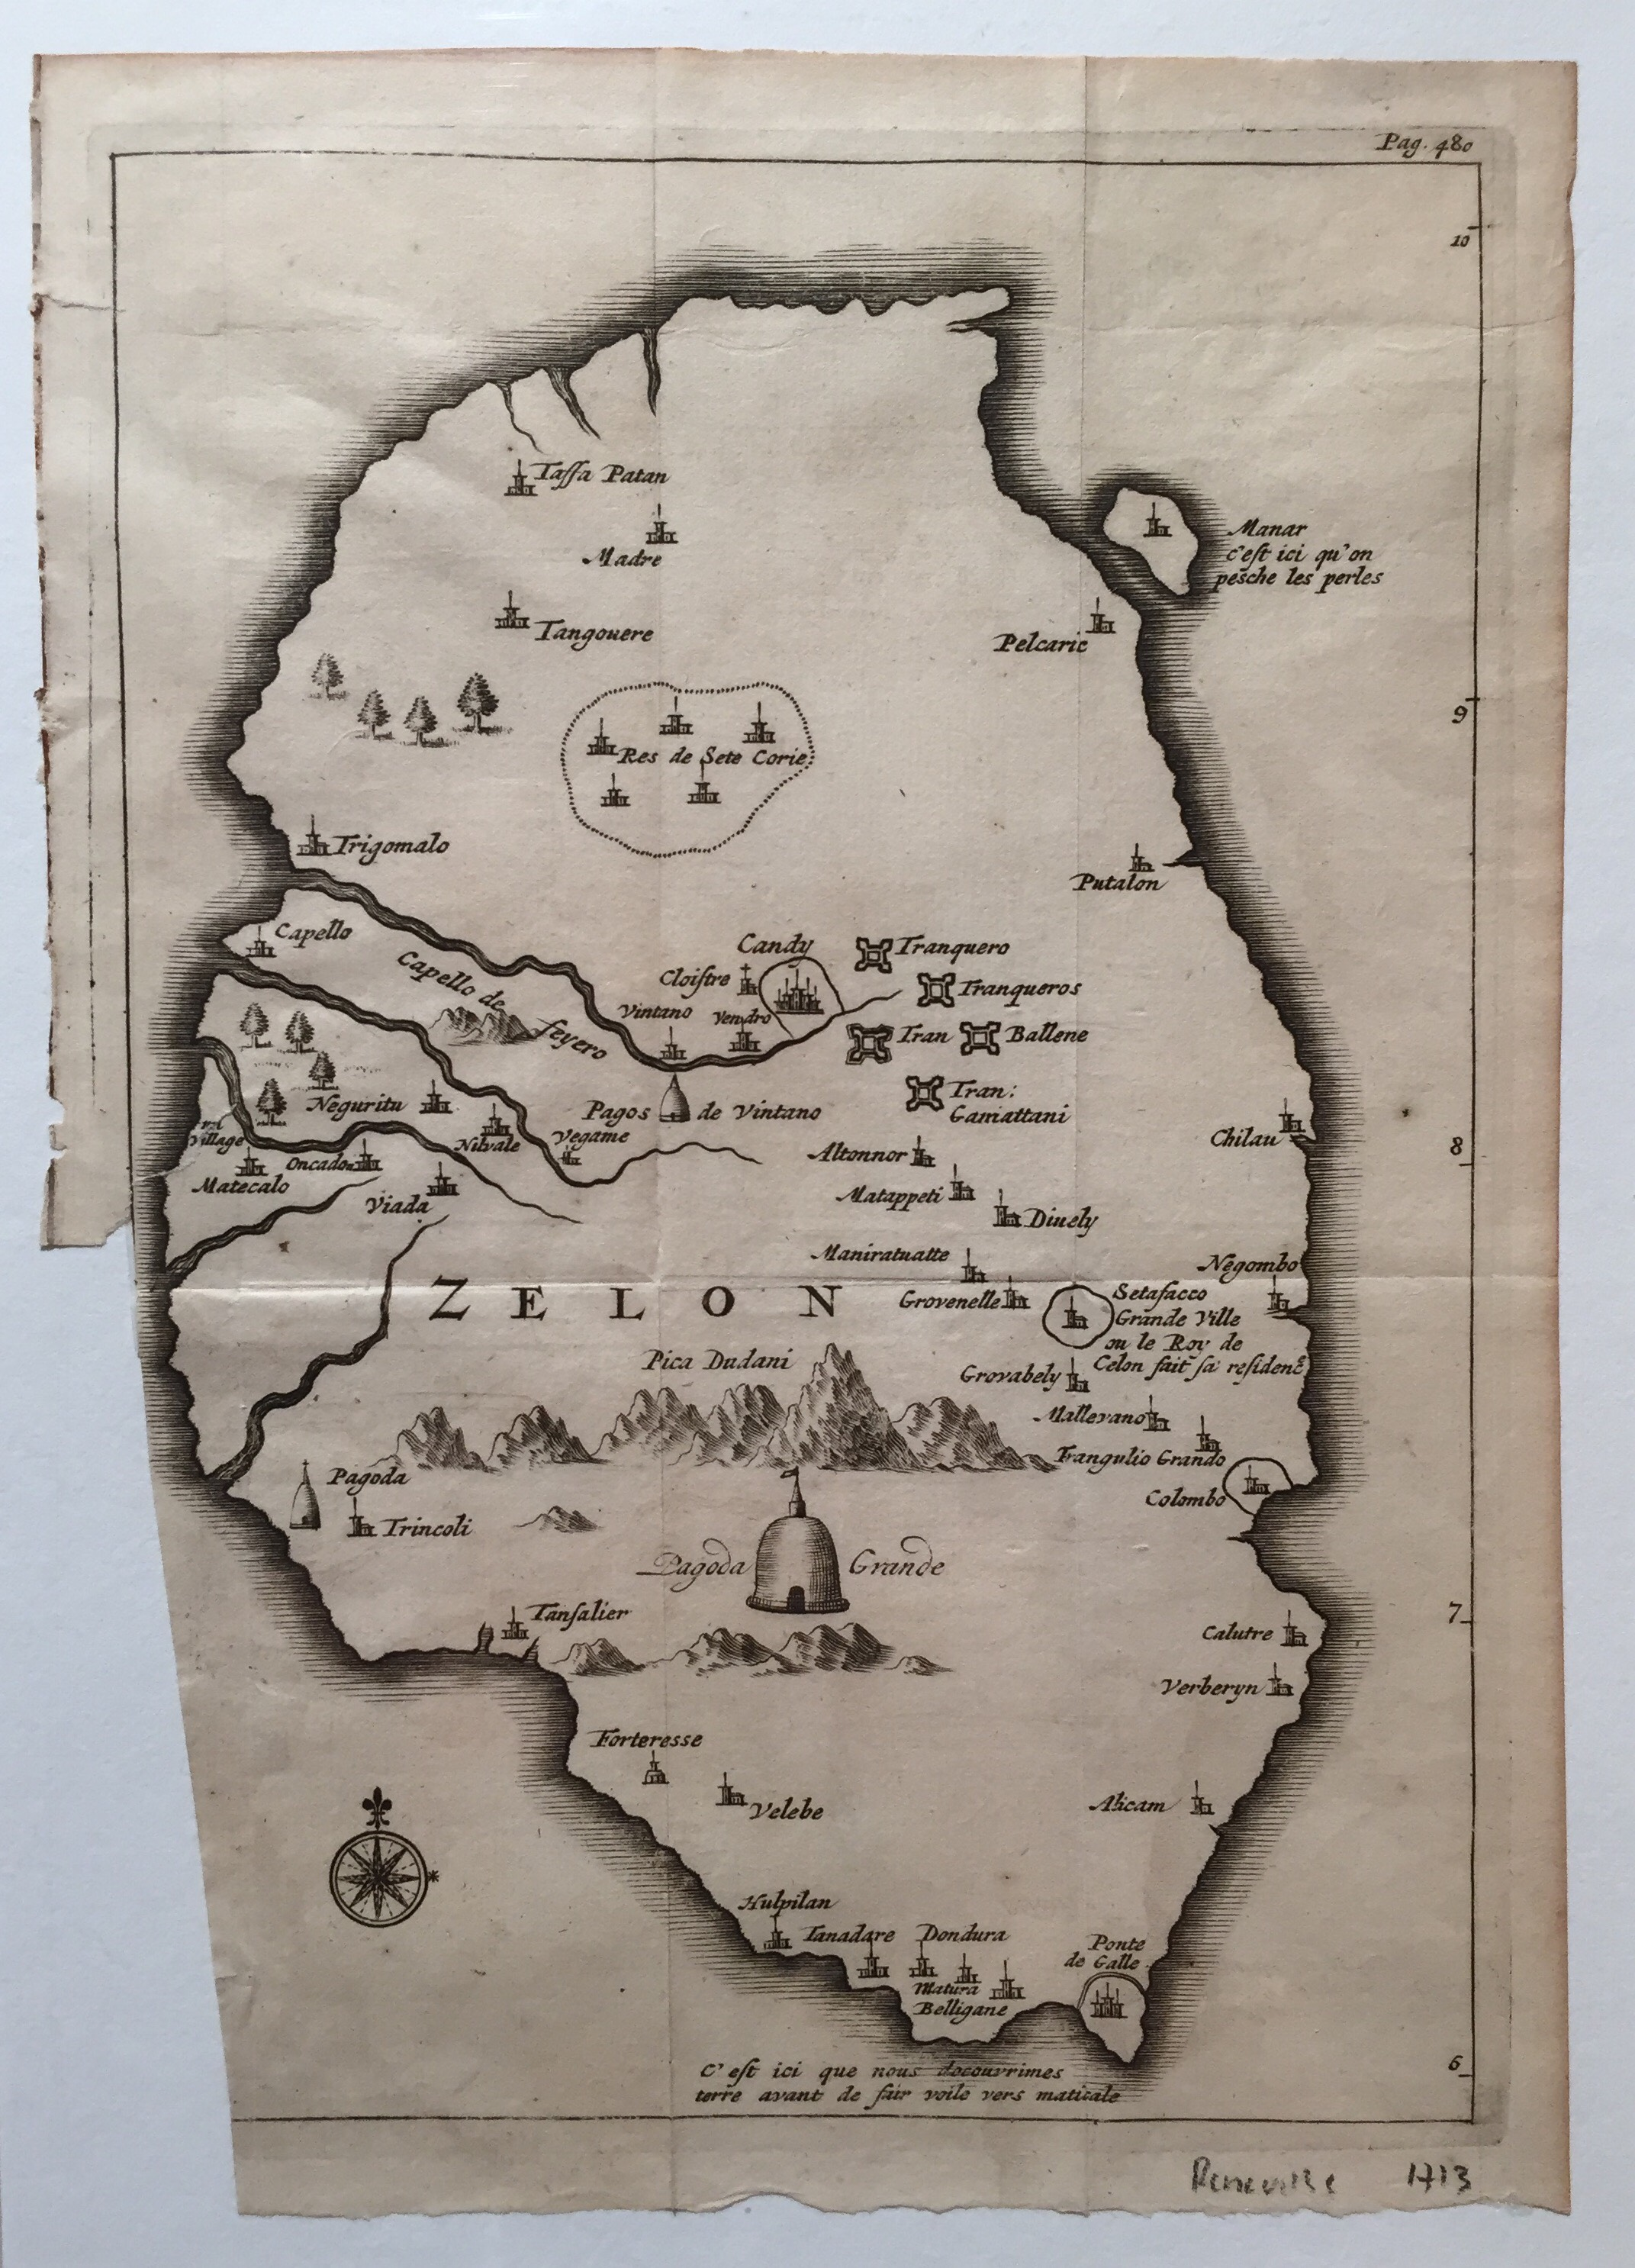 Antique Map Ceylon by Renneville (c.1705) - SOLDBartele Gallery on tunis map, sumatra map, timbuktu map, bengal map, punjab map, moluccas map, canton map, south asia, malaysia map, china map, kiev map, ghana map, burma map, japan map, gujarat map, kabul map, damascus map, morocco map, singapore map, tibet map, congo africa located on map,